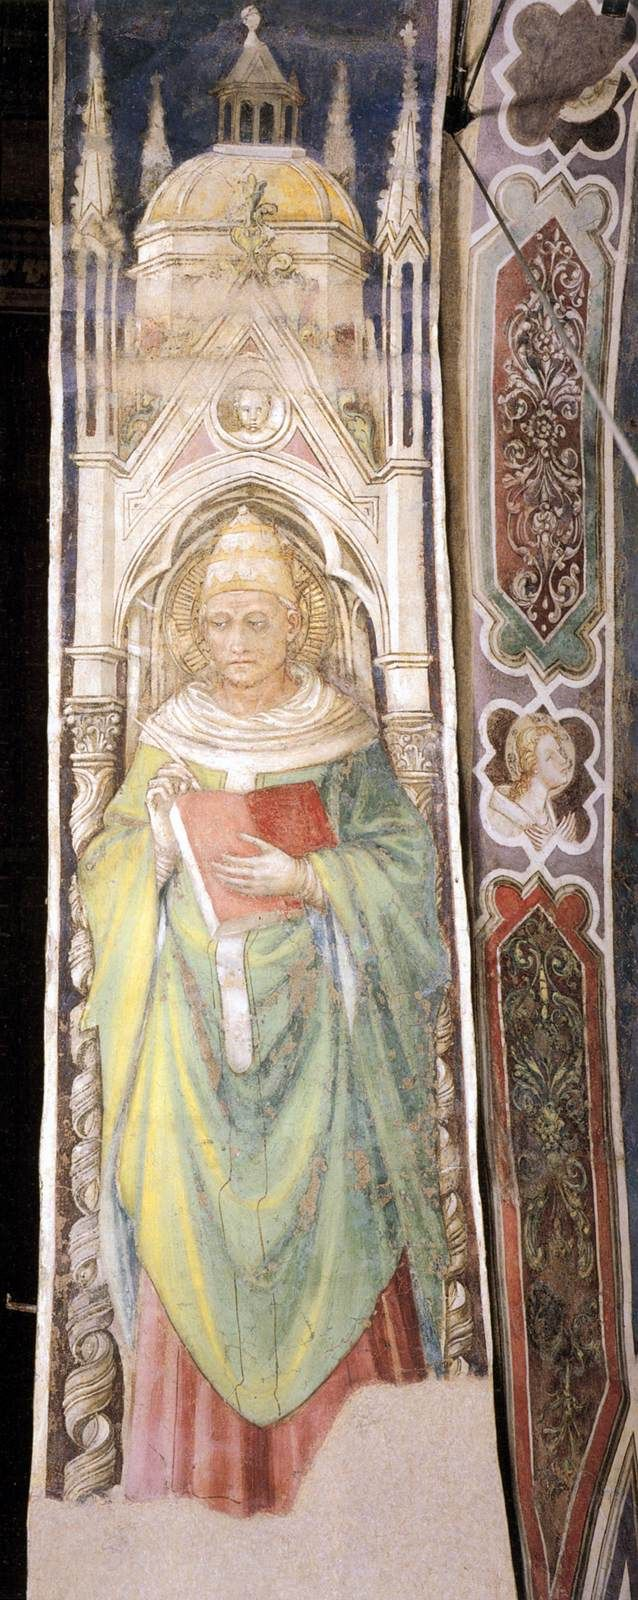 Saint Gregory the Great / Gregor der Große around 1447 Bicci di Lorenzo